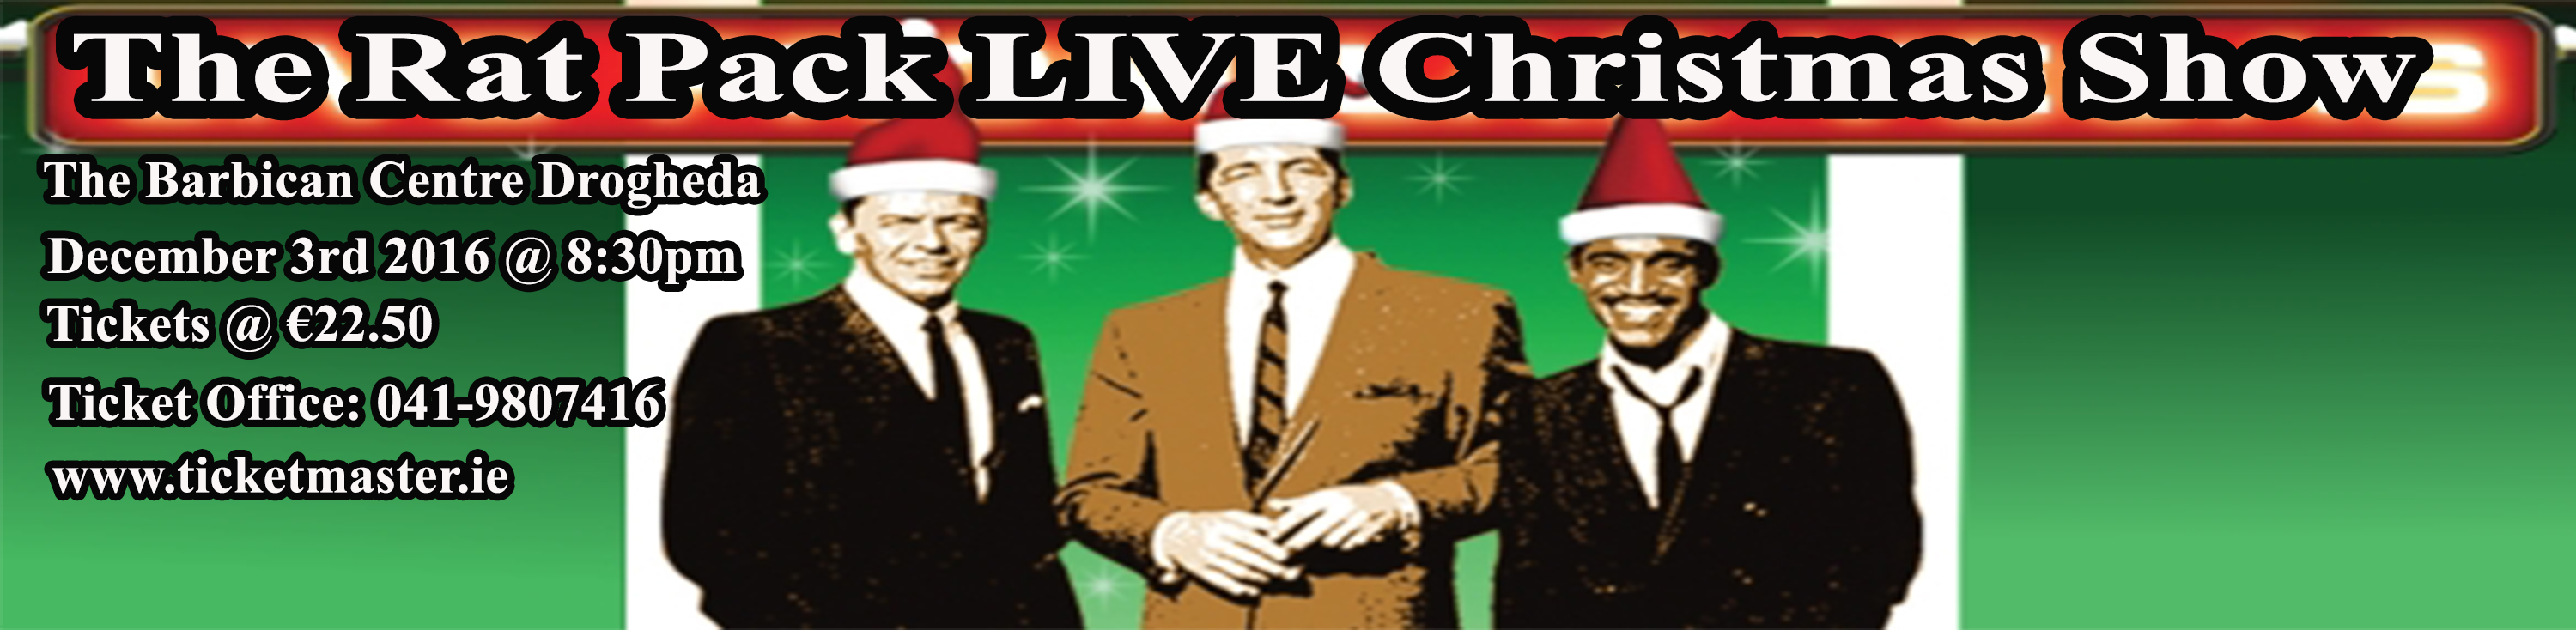 http://www.thebarbican.ie/events/the-rat-pack-live-christmas-show/